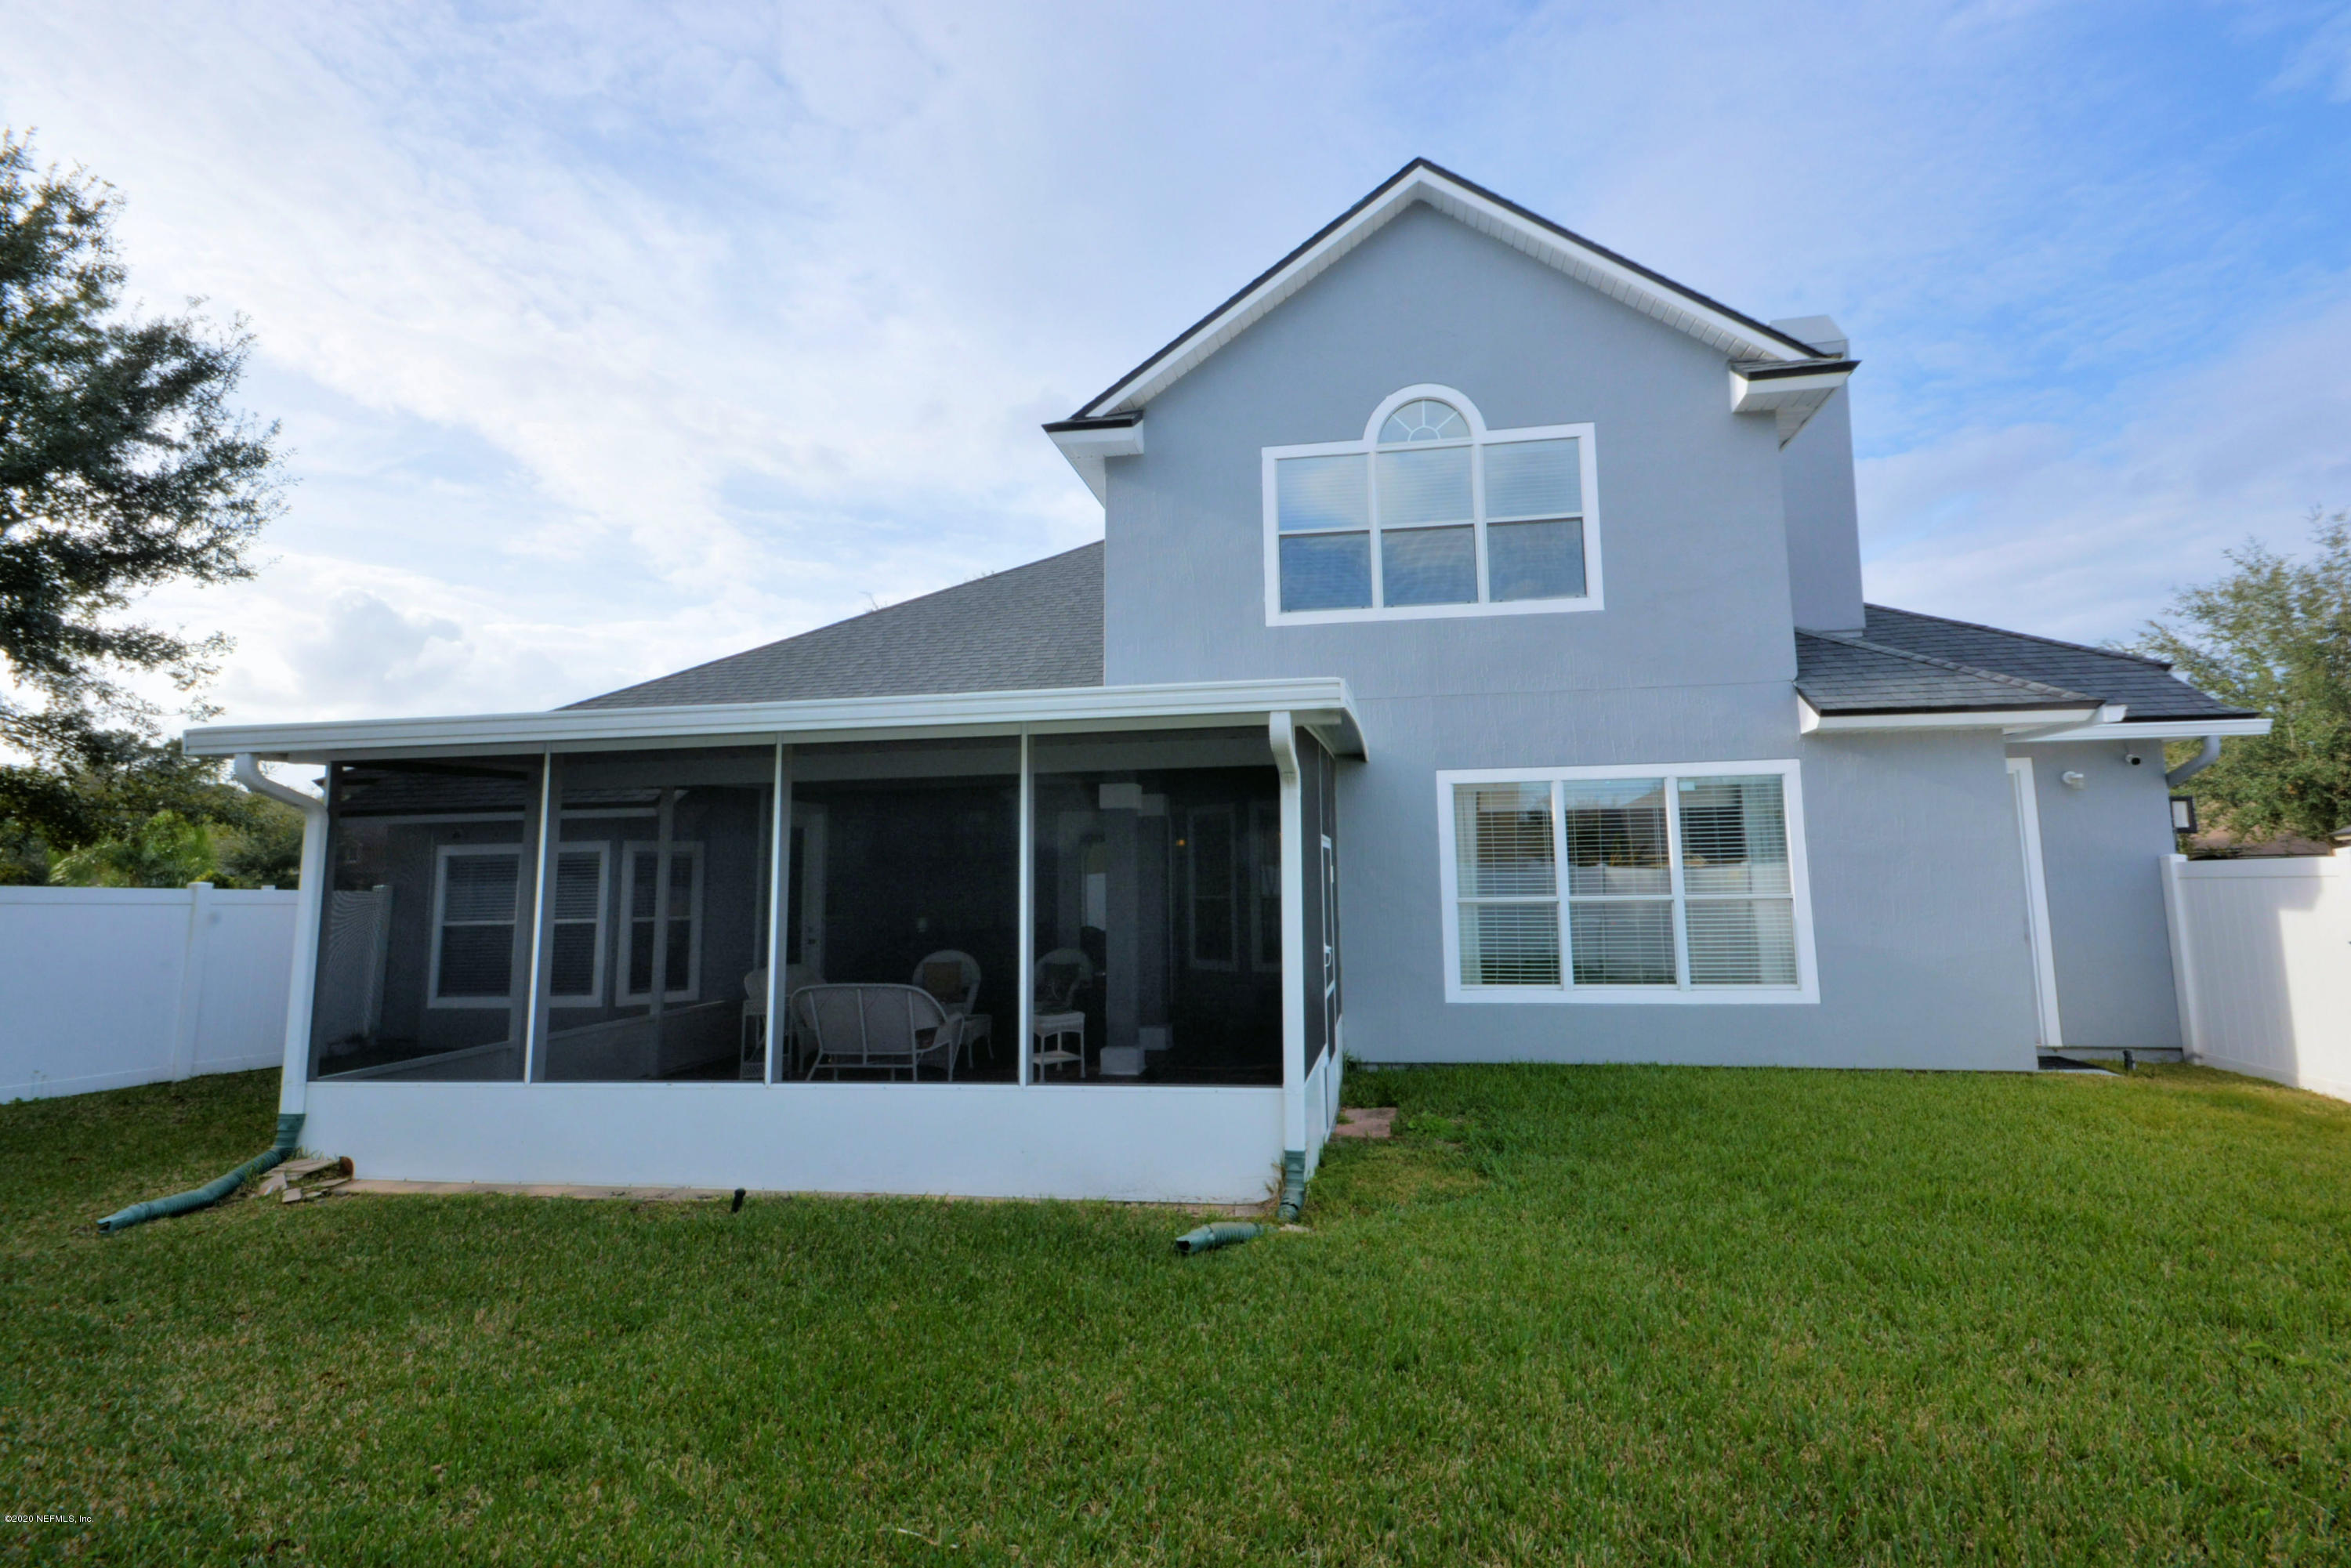 665 CHESTWOOD CHASE, ORANGE PARK, FLORIDA 32065, 4 Bedrooms Bedrooms, ,4 BathroomsBathrooms,Residential,For sale,CHESTWOOD CHASE,1038014